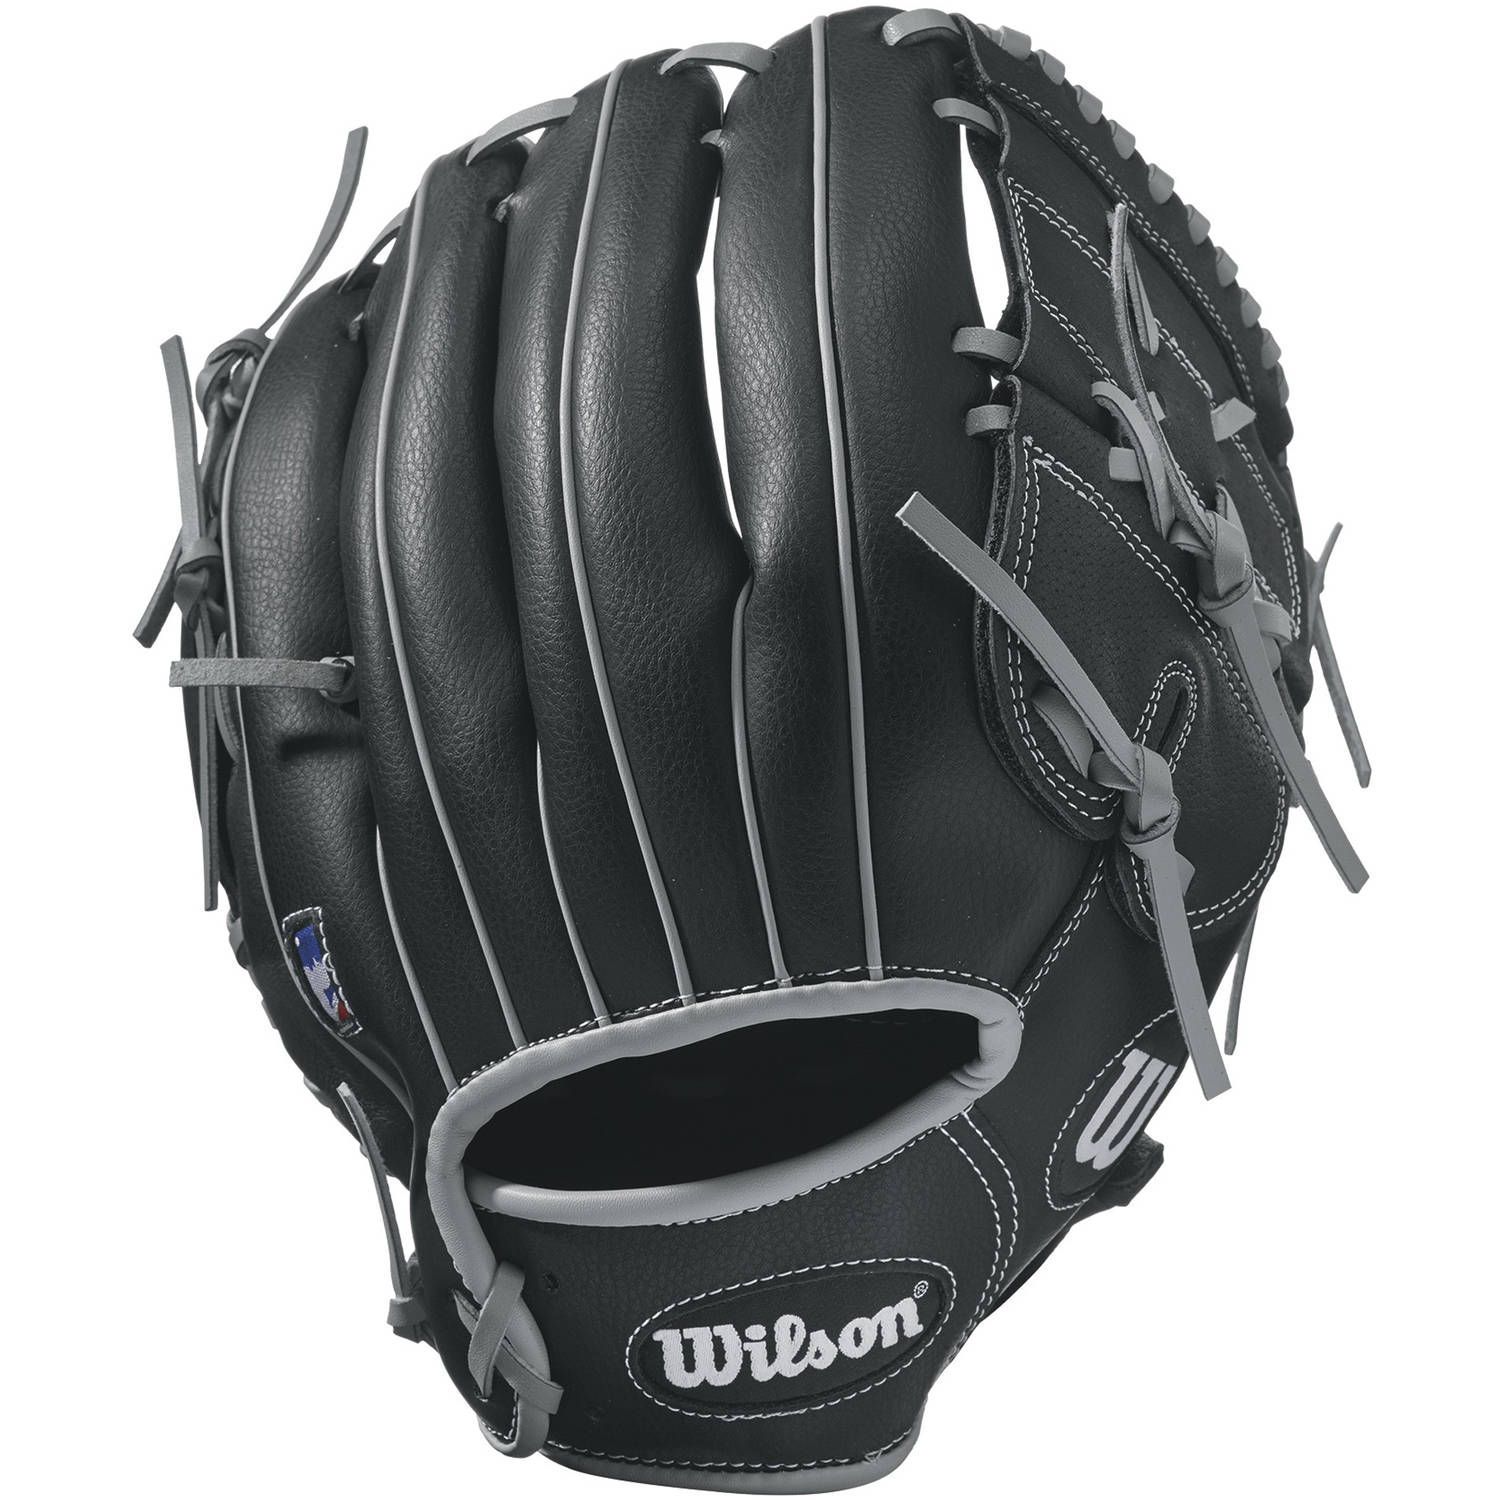 """Wilson Sporting Goods A360 12"""" Baseball Glove Left or Right Hand Throw by Wilson Sporting Goods"""